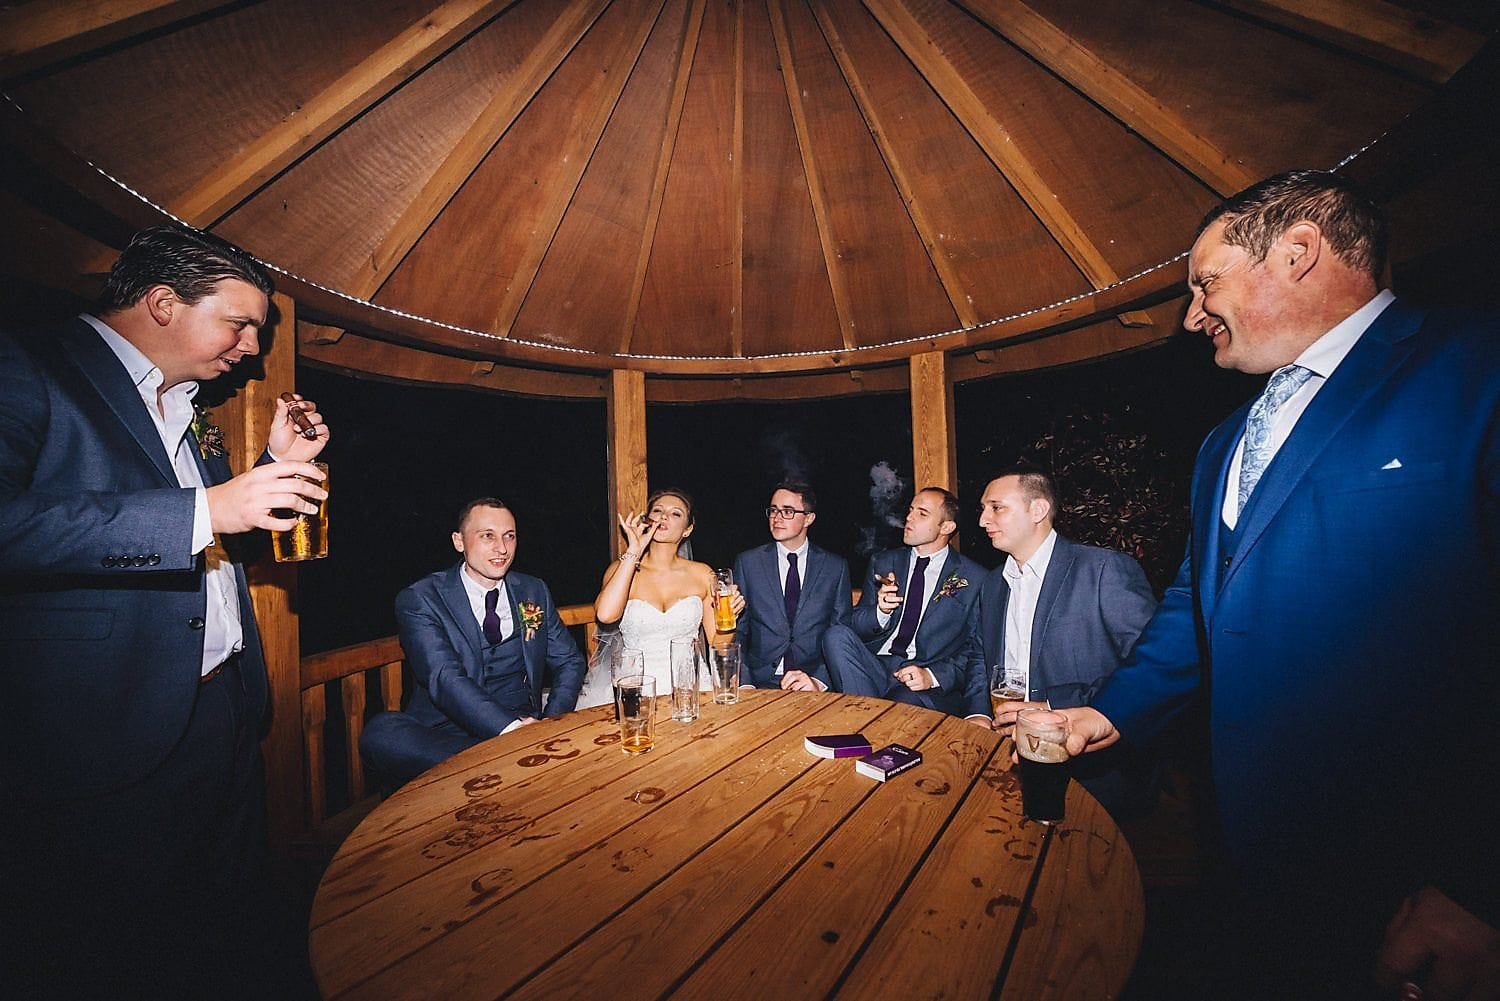 Bride, groom and groomsmen enjoy a celebratory cigar at the wedding party